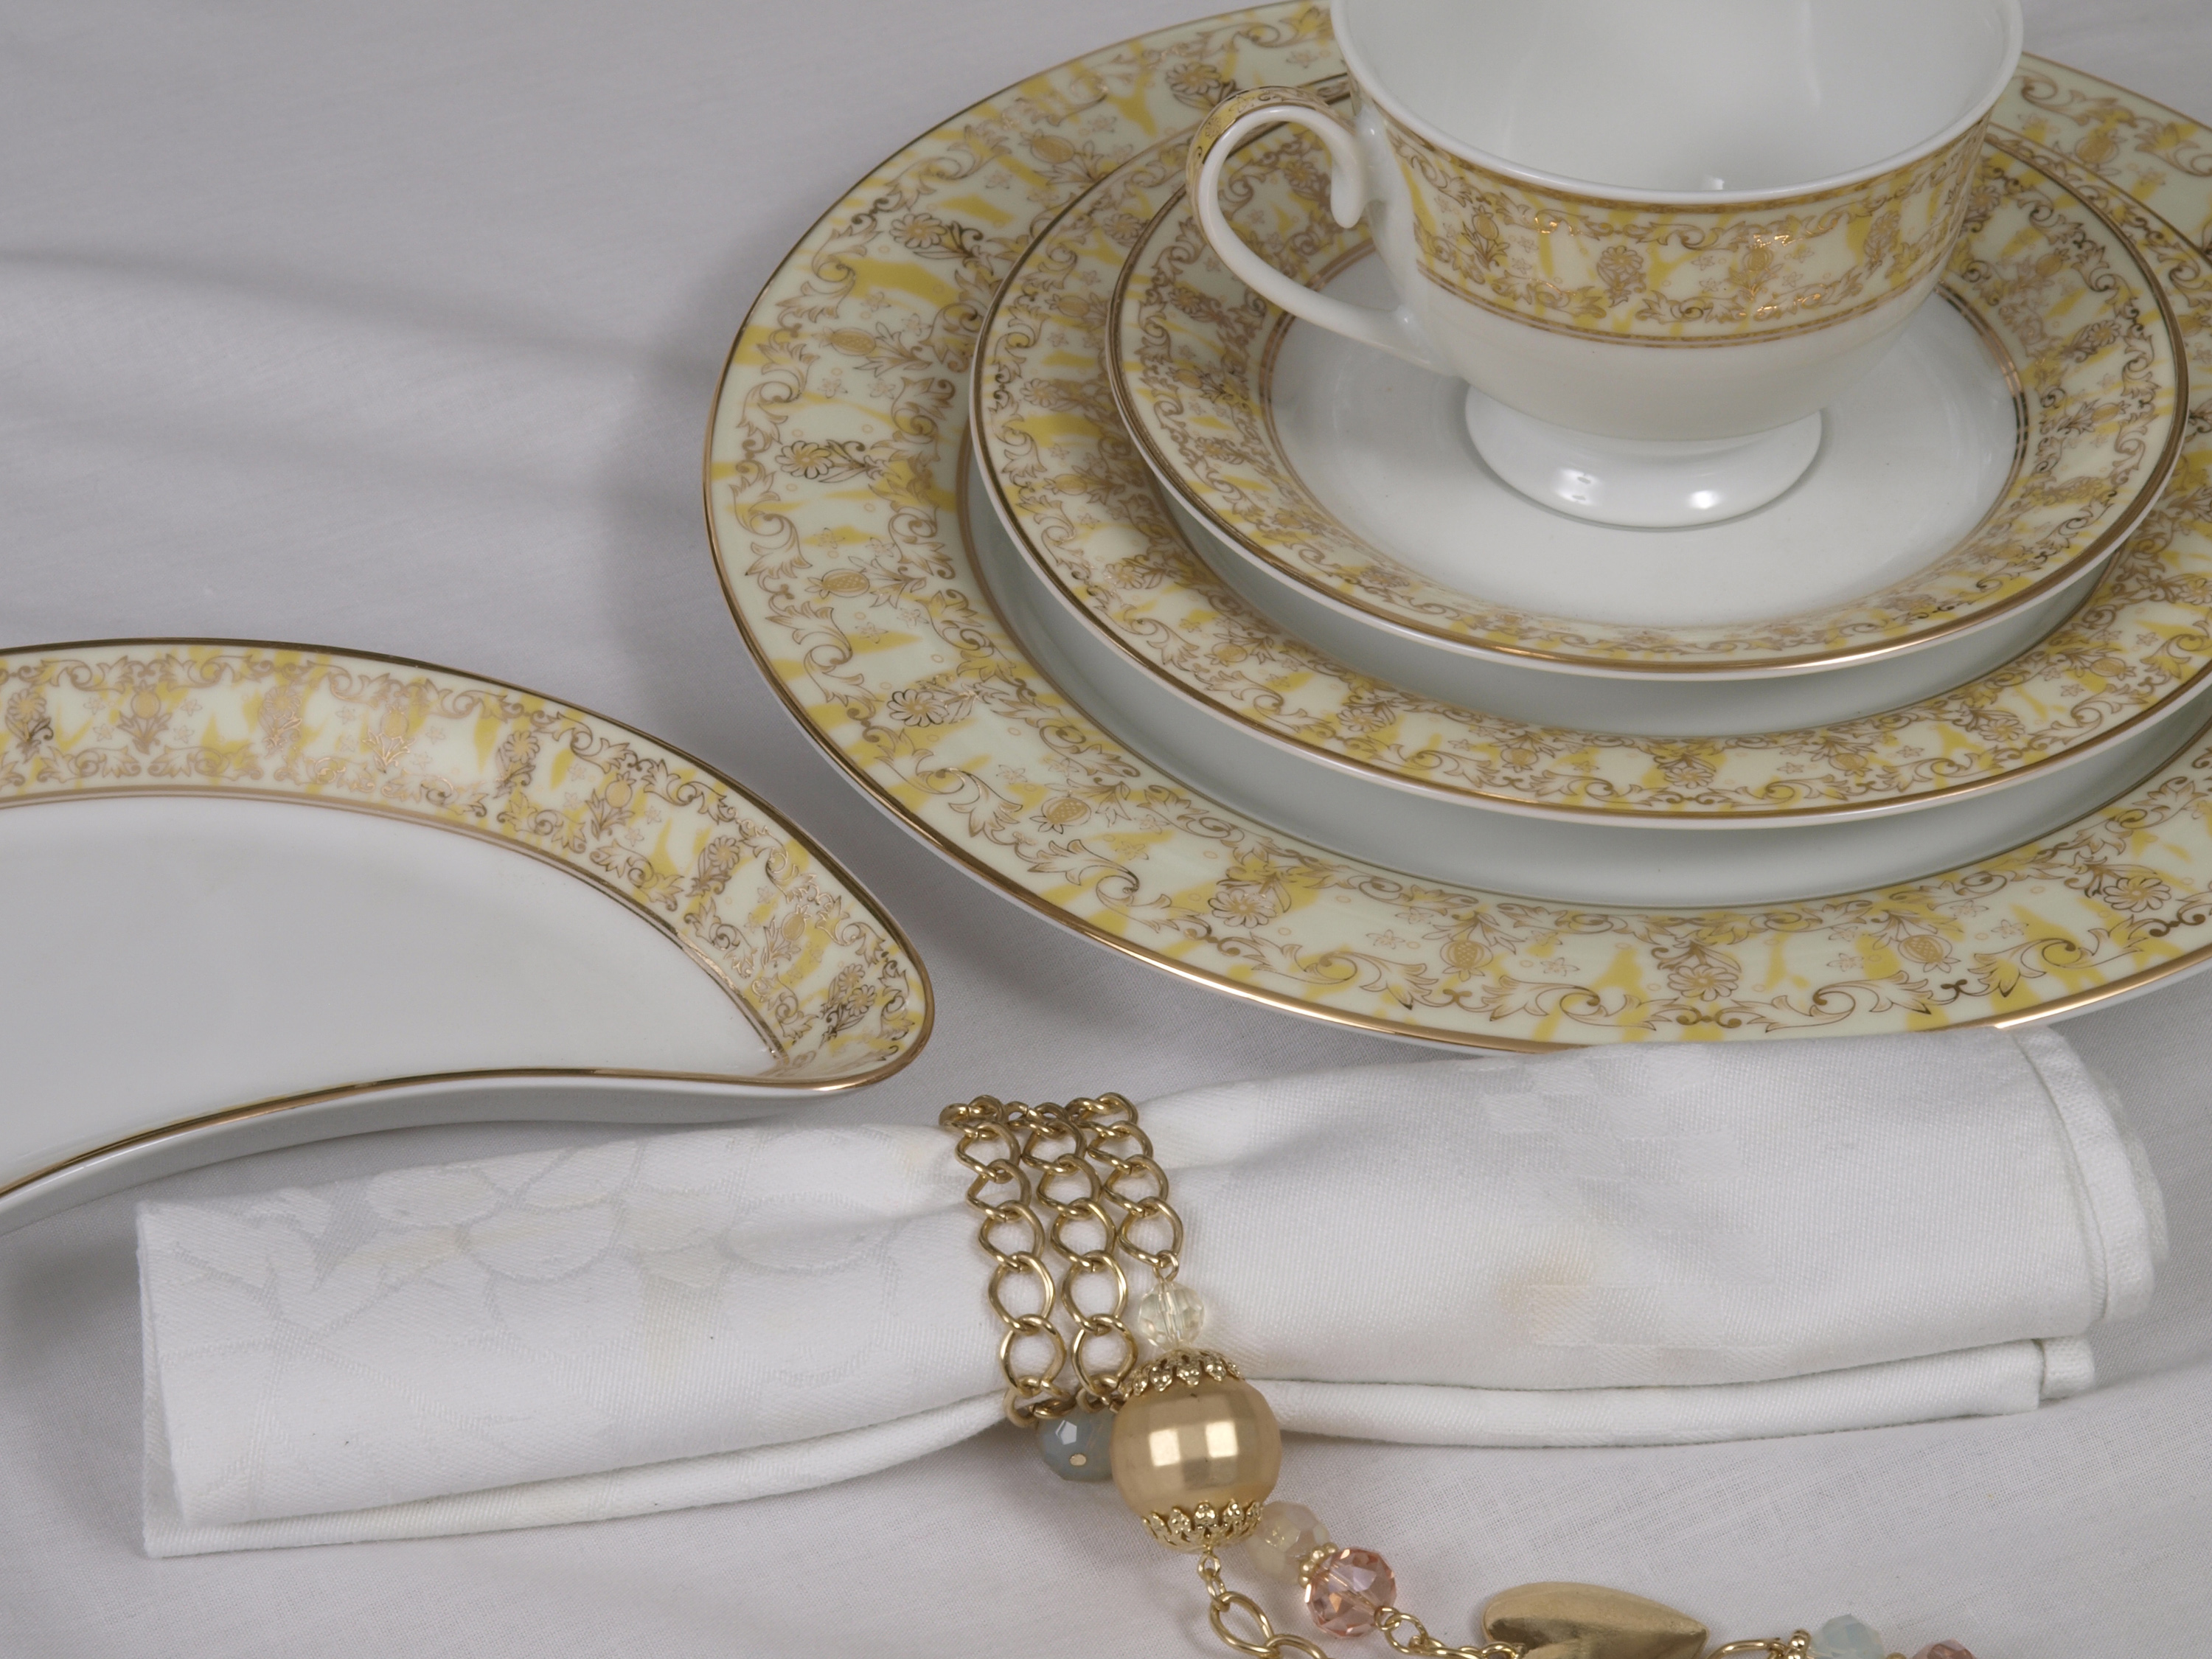 THE MARIGOLD 56 PIECE DINNER SERVICE